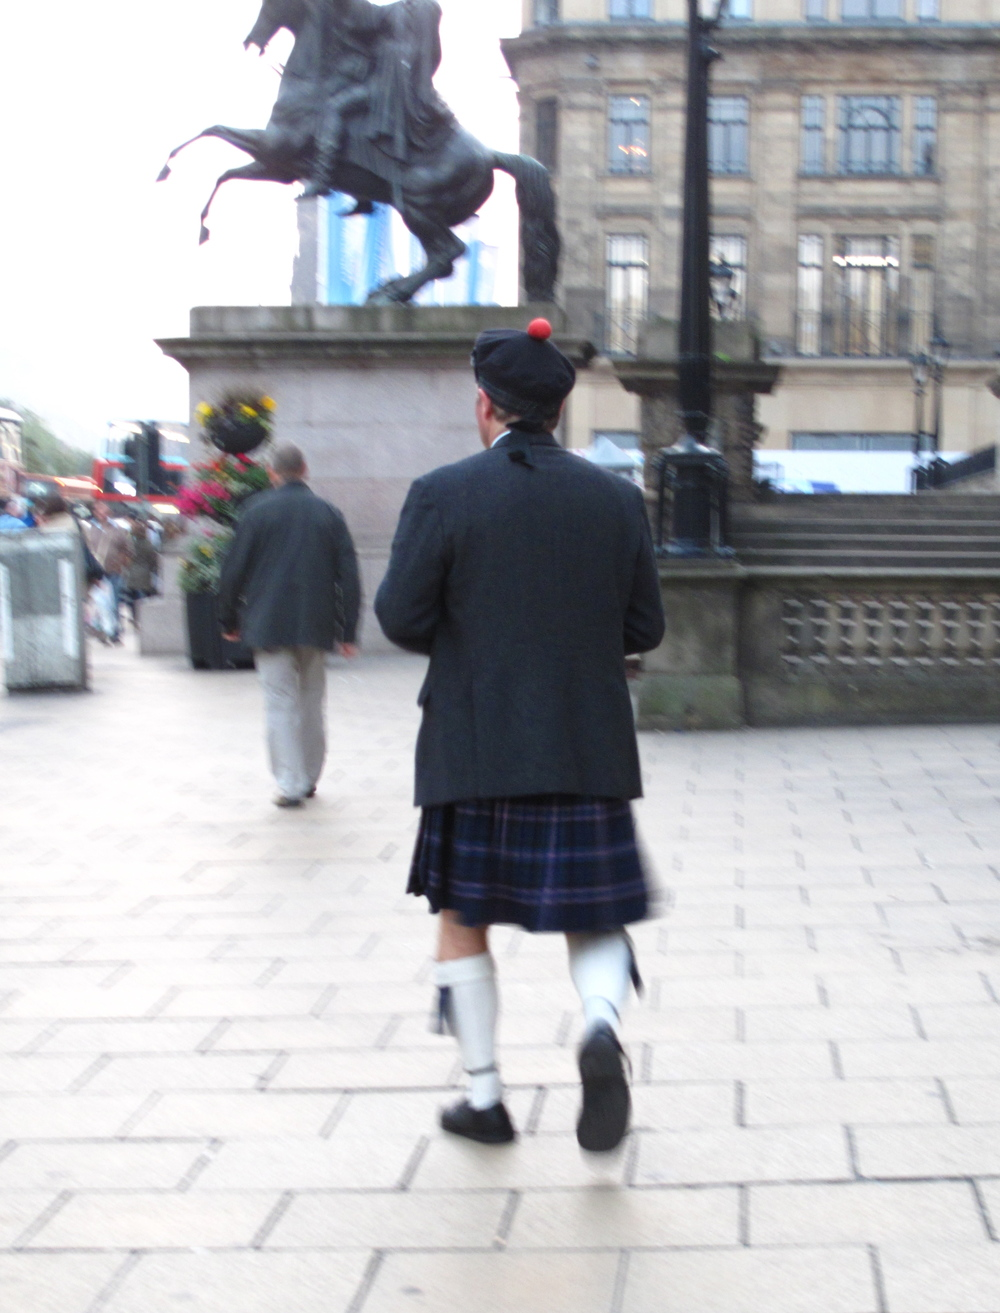 Man in traditional Scottish garb - with a pompom hat.